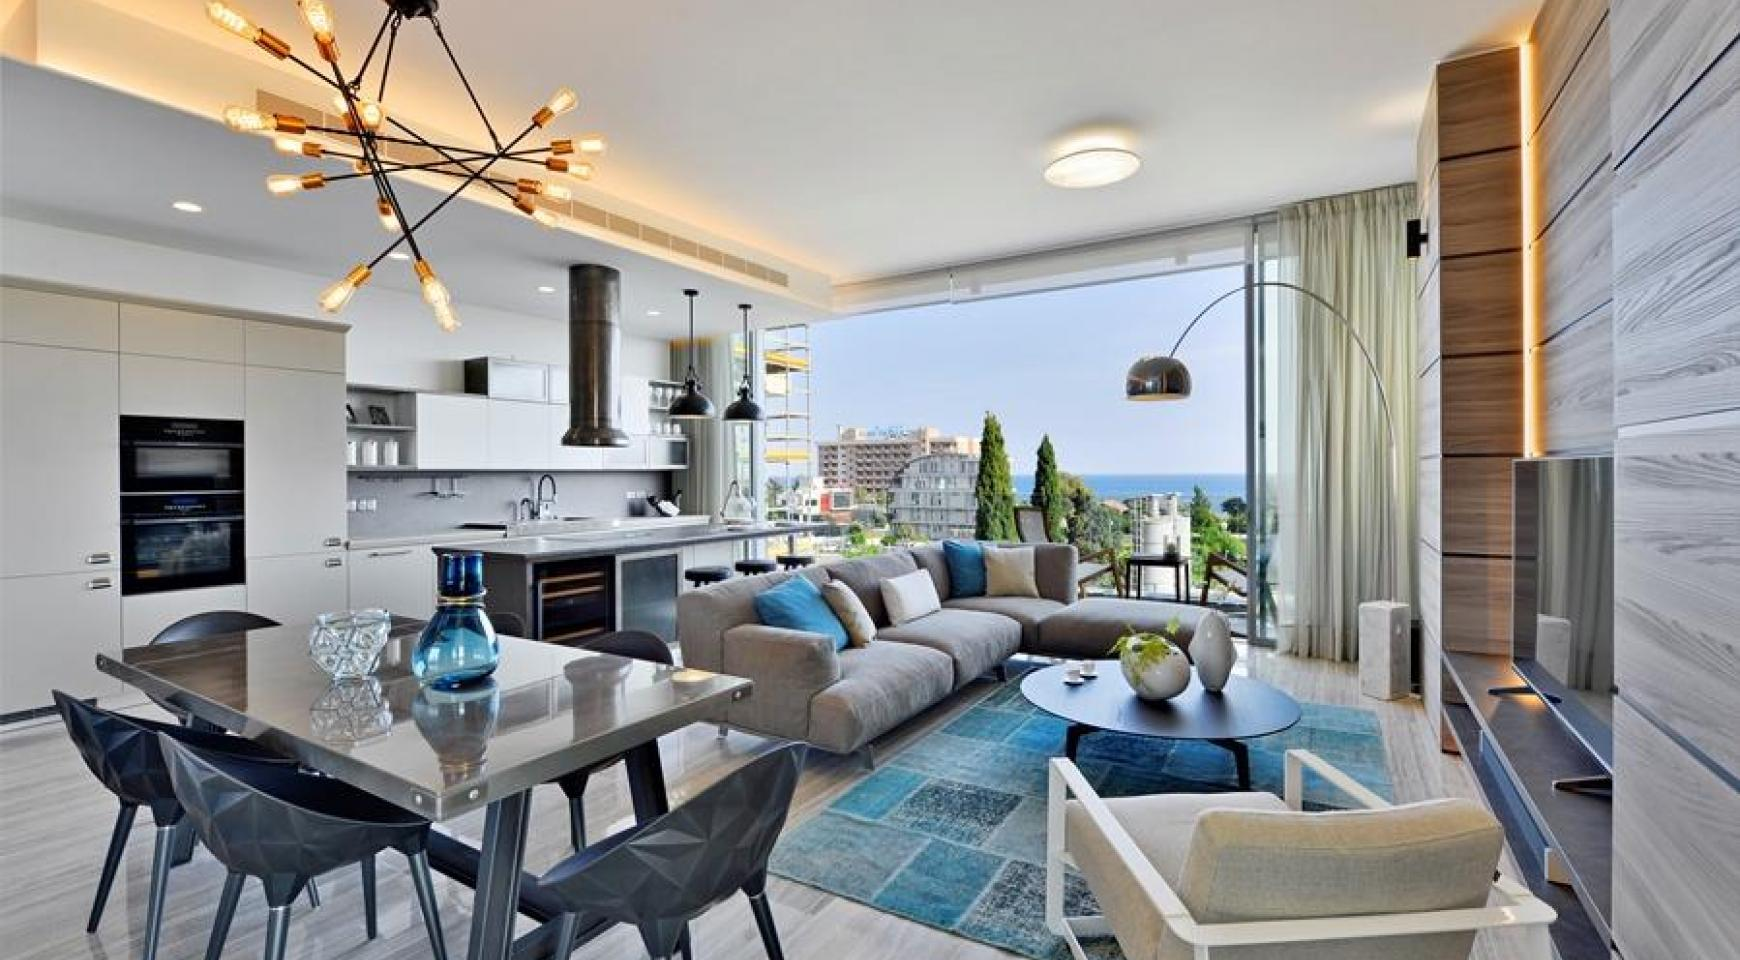 Elite 3 Bedroom Apartment within a New Complex near the Sea - 1